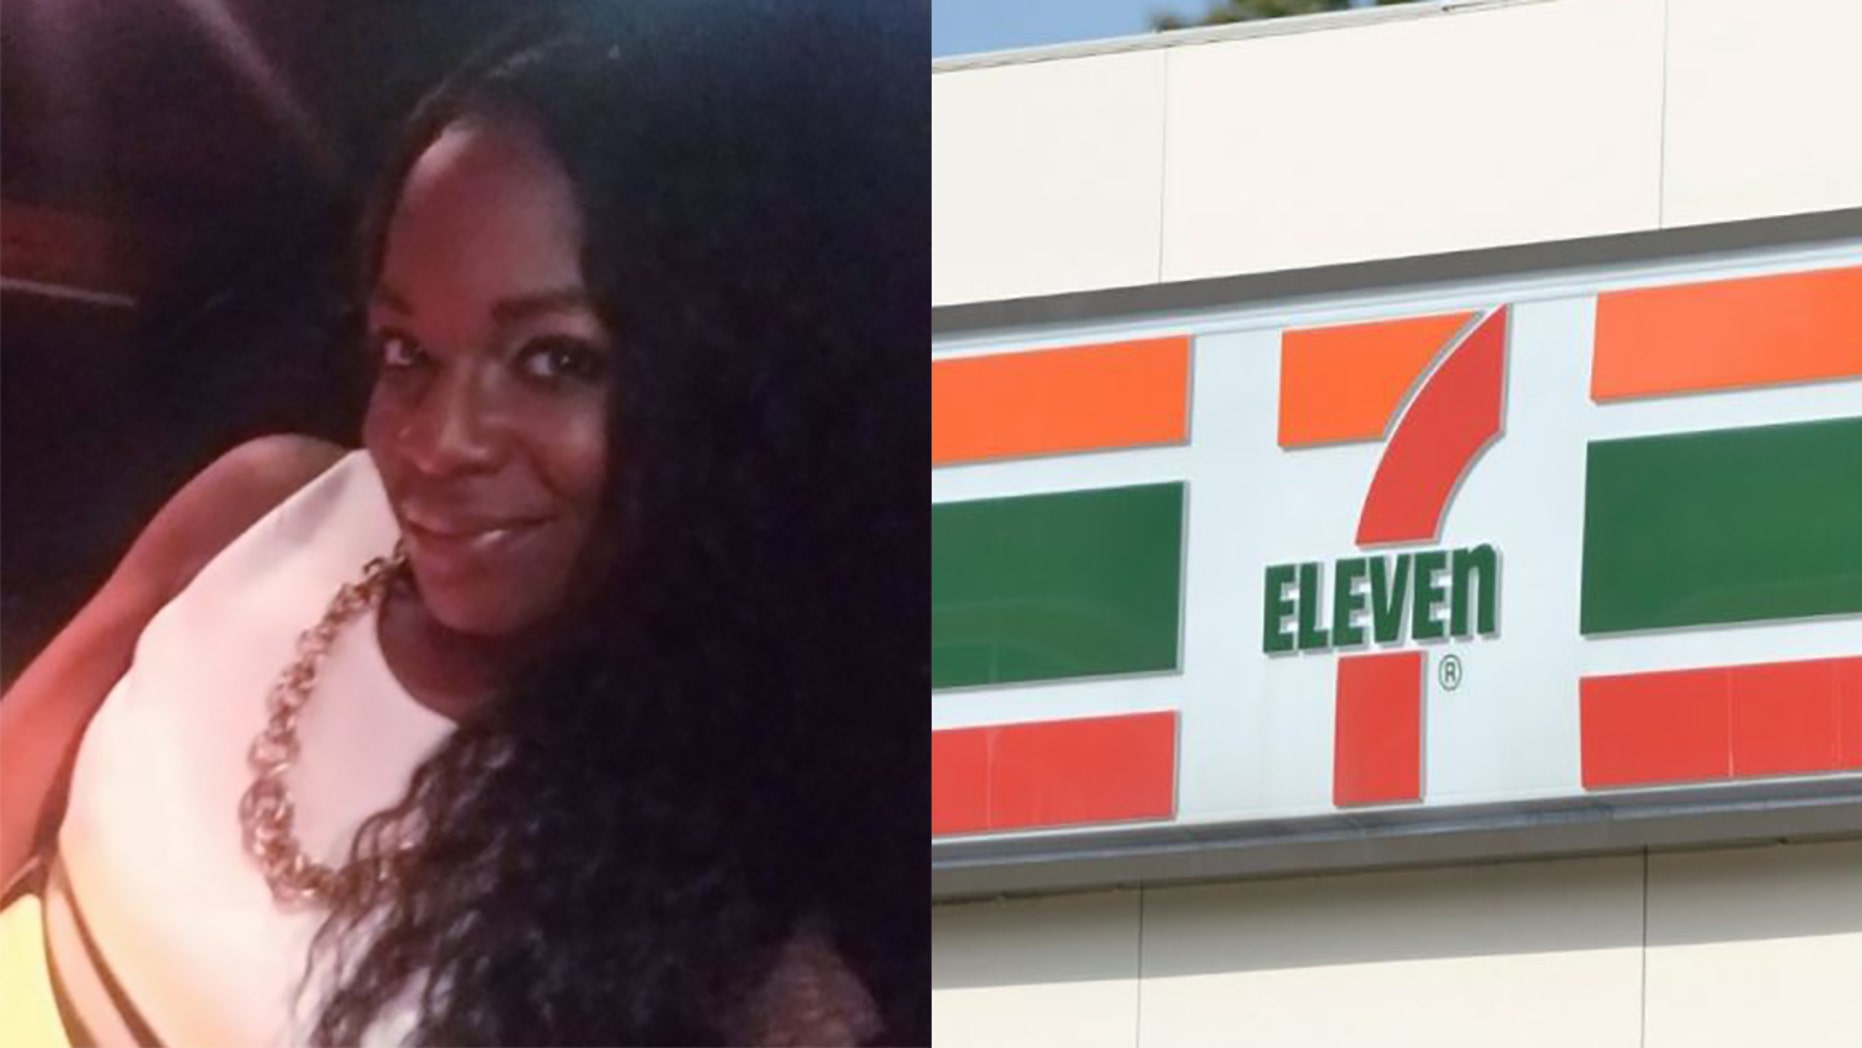 The New York woman is being credited with saving one man's life on a Slurpee run.